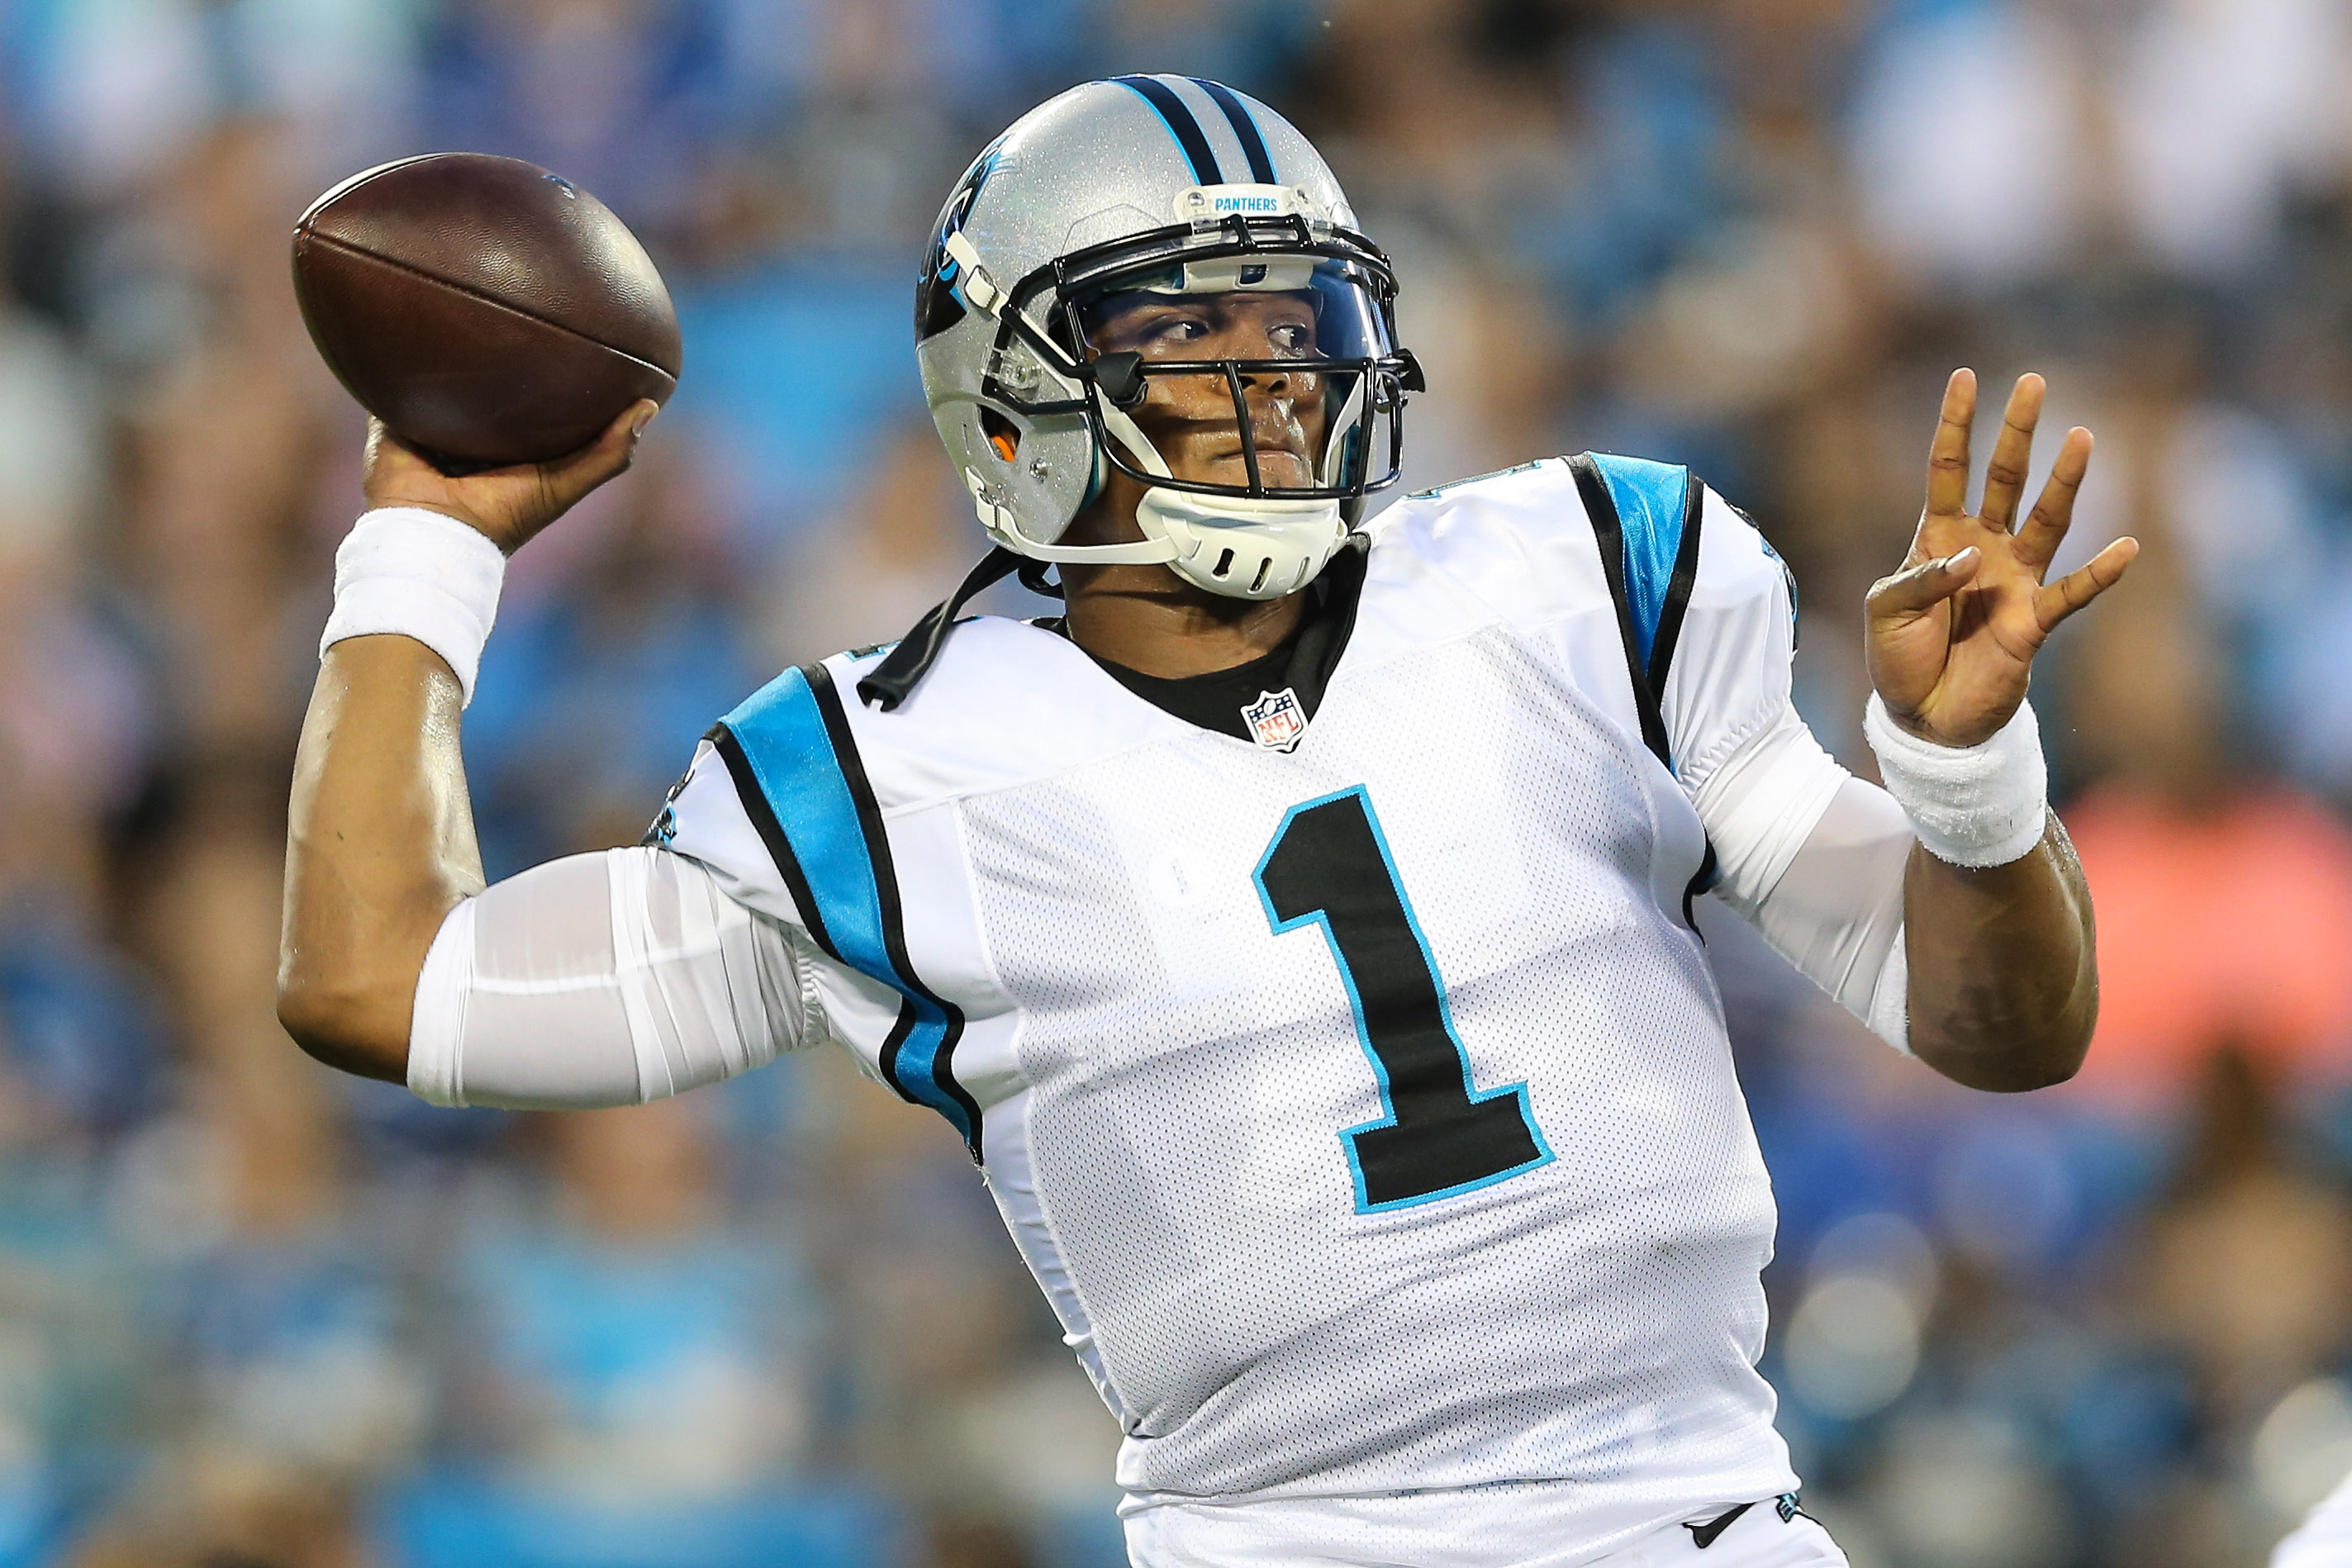 Cam Newton will have a tough task in Week 1 when he travels to Denver for a Super Bowl rematch